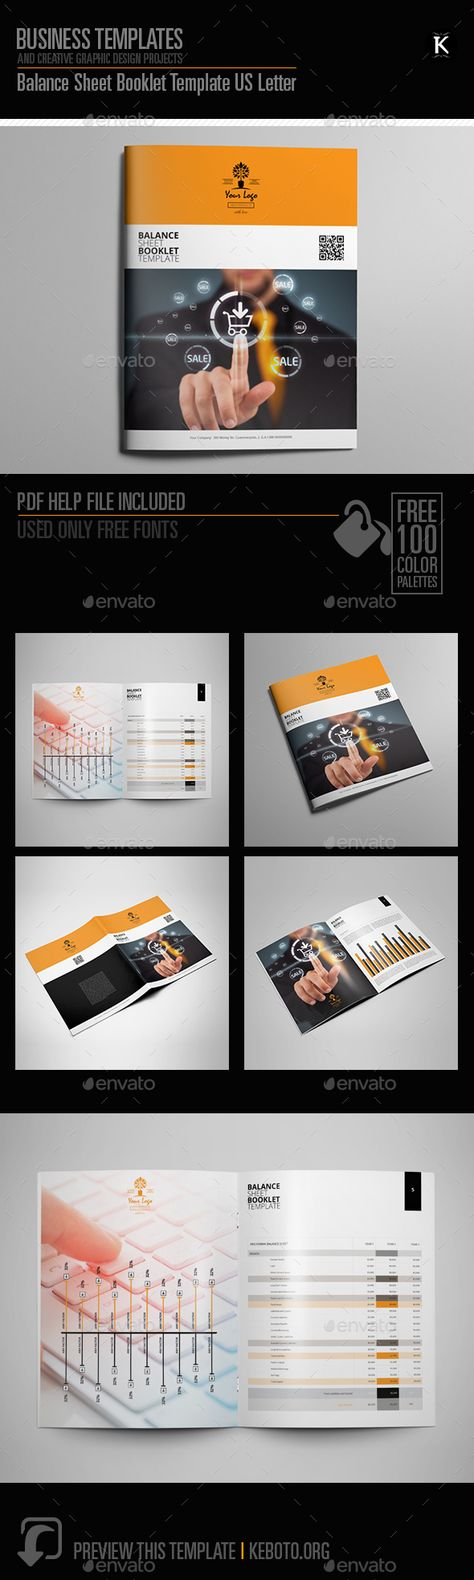 Ian Lundin ©Alban Kakulya Portraits Pinterest Portraits - business balance sheet template